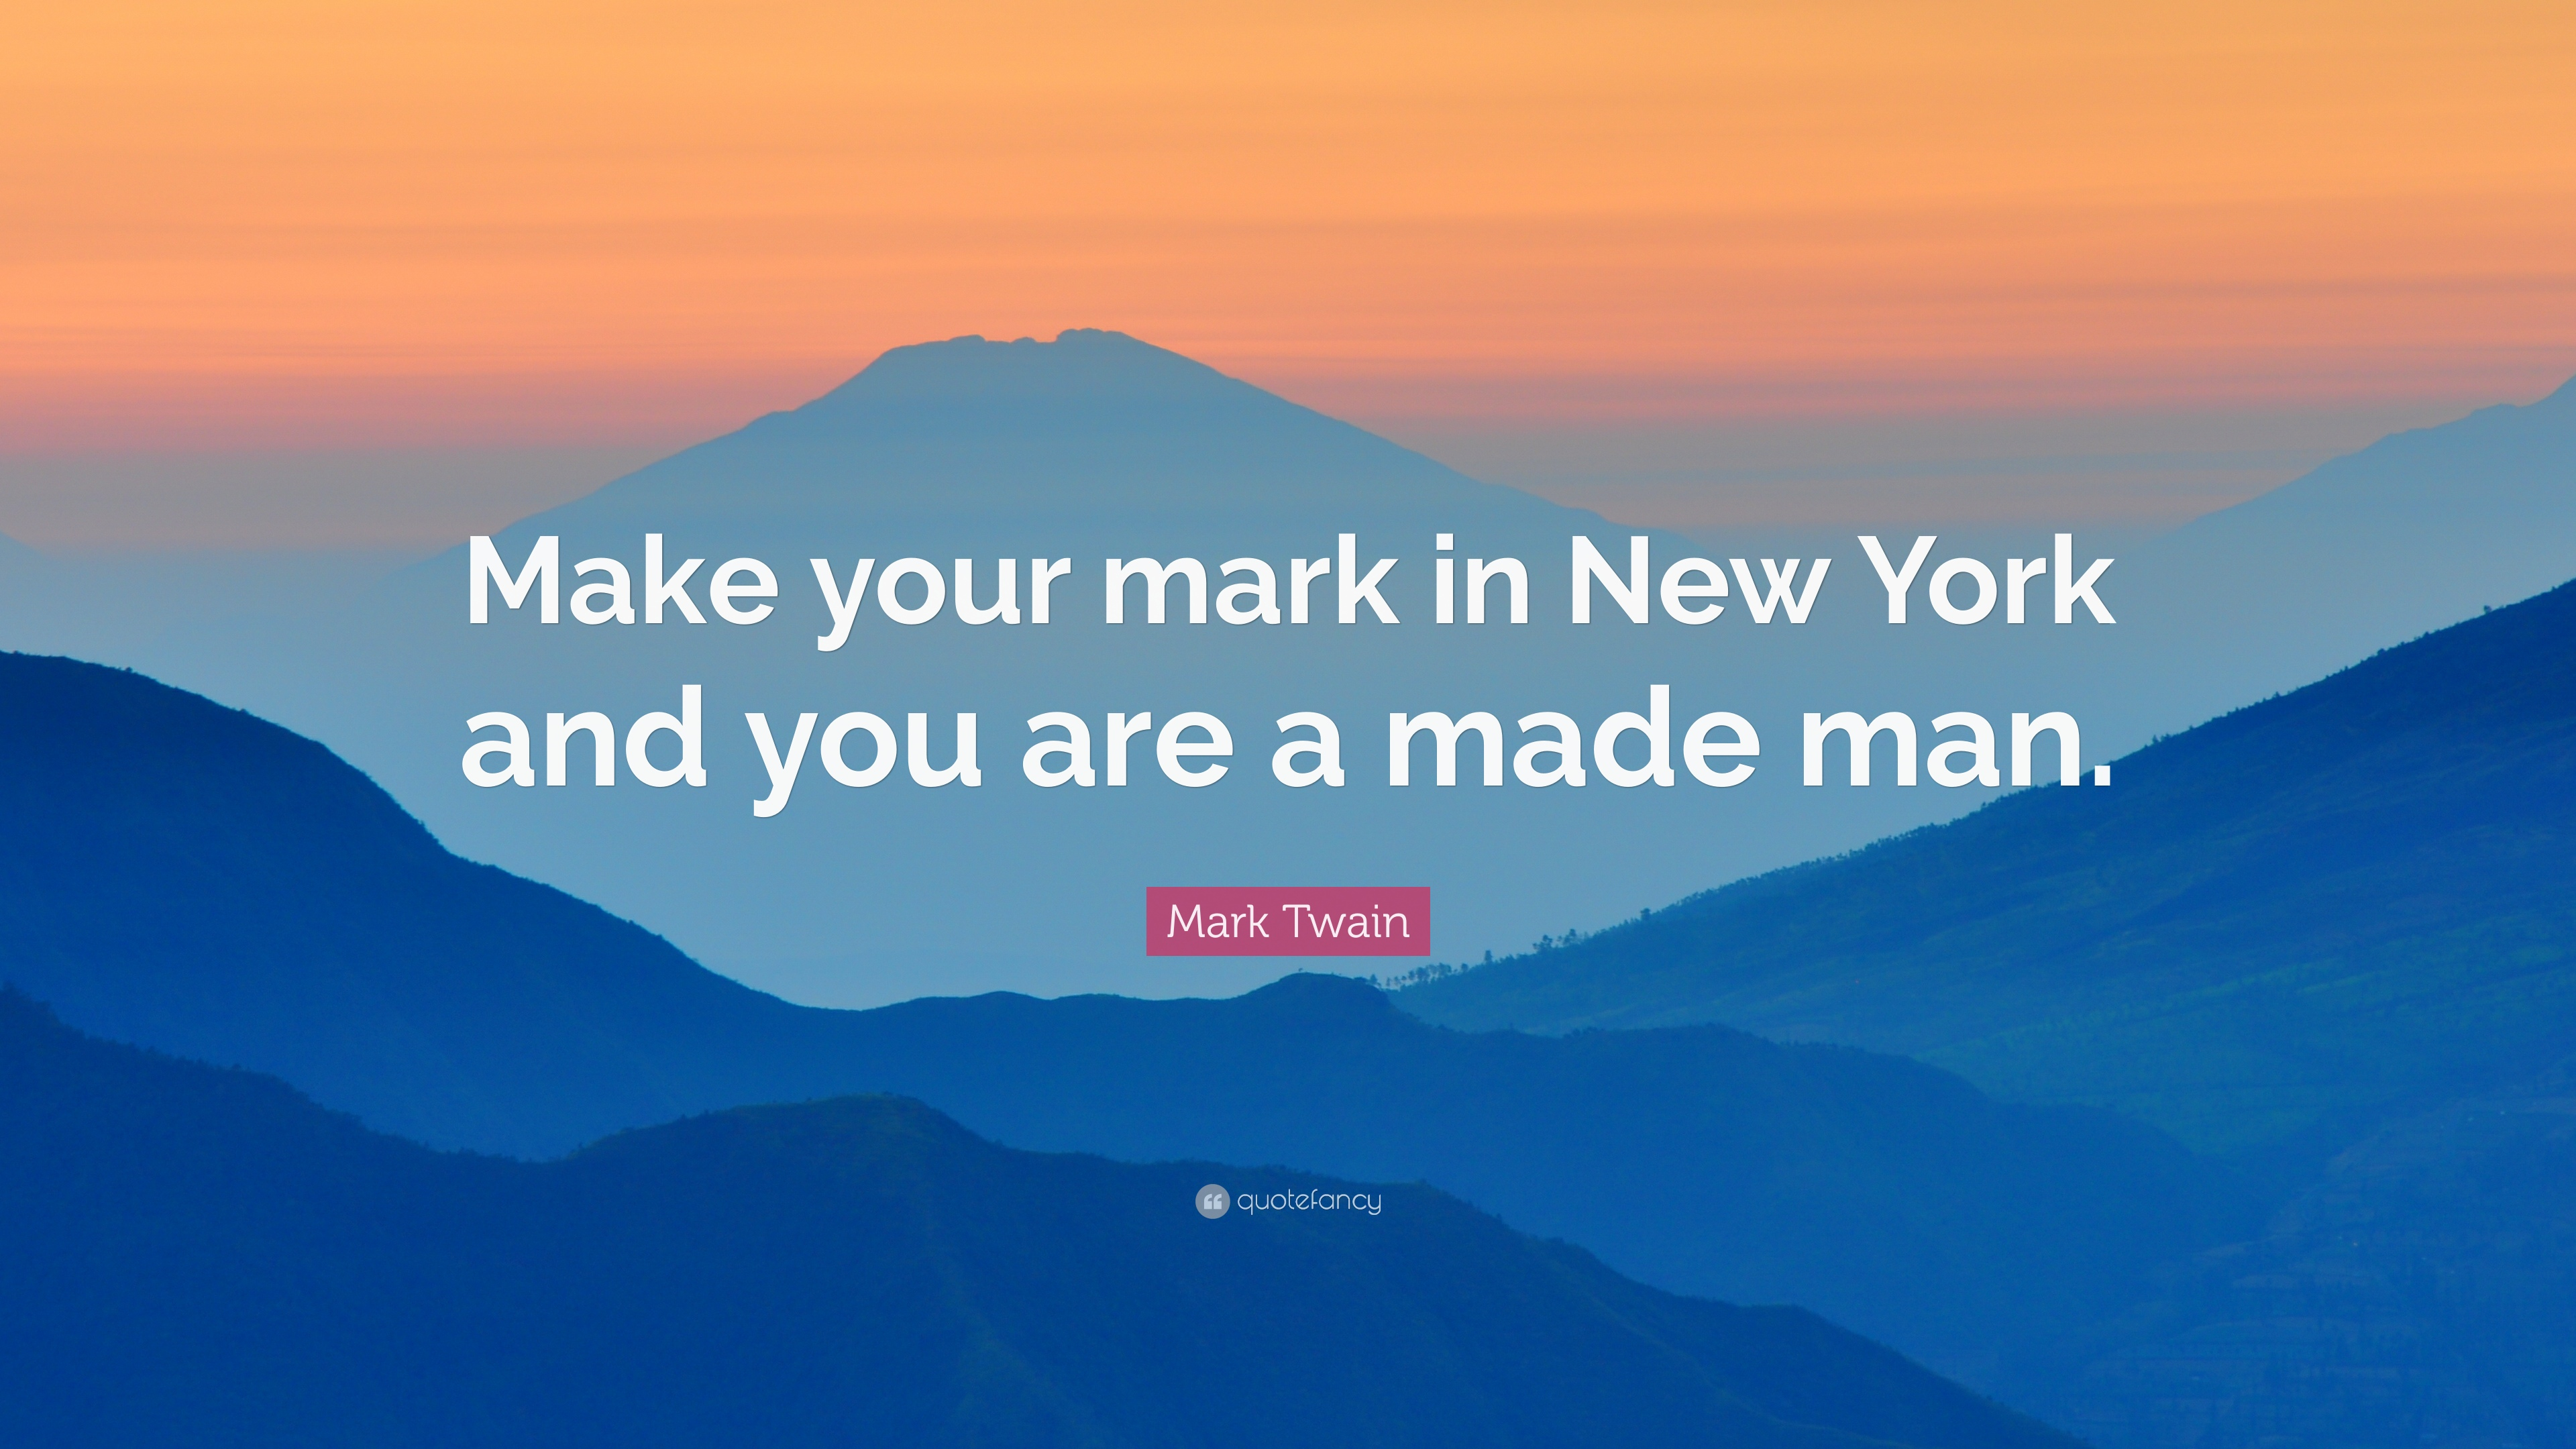 Mark Twain Quote Make Your Mark In New York And You Are A Made Man